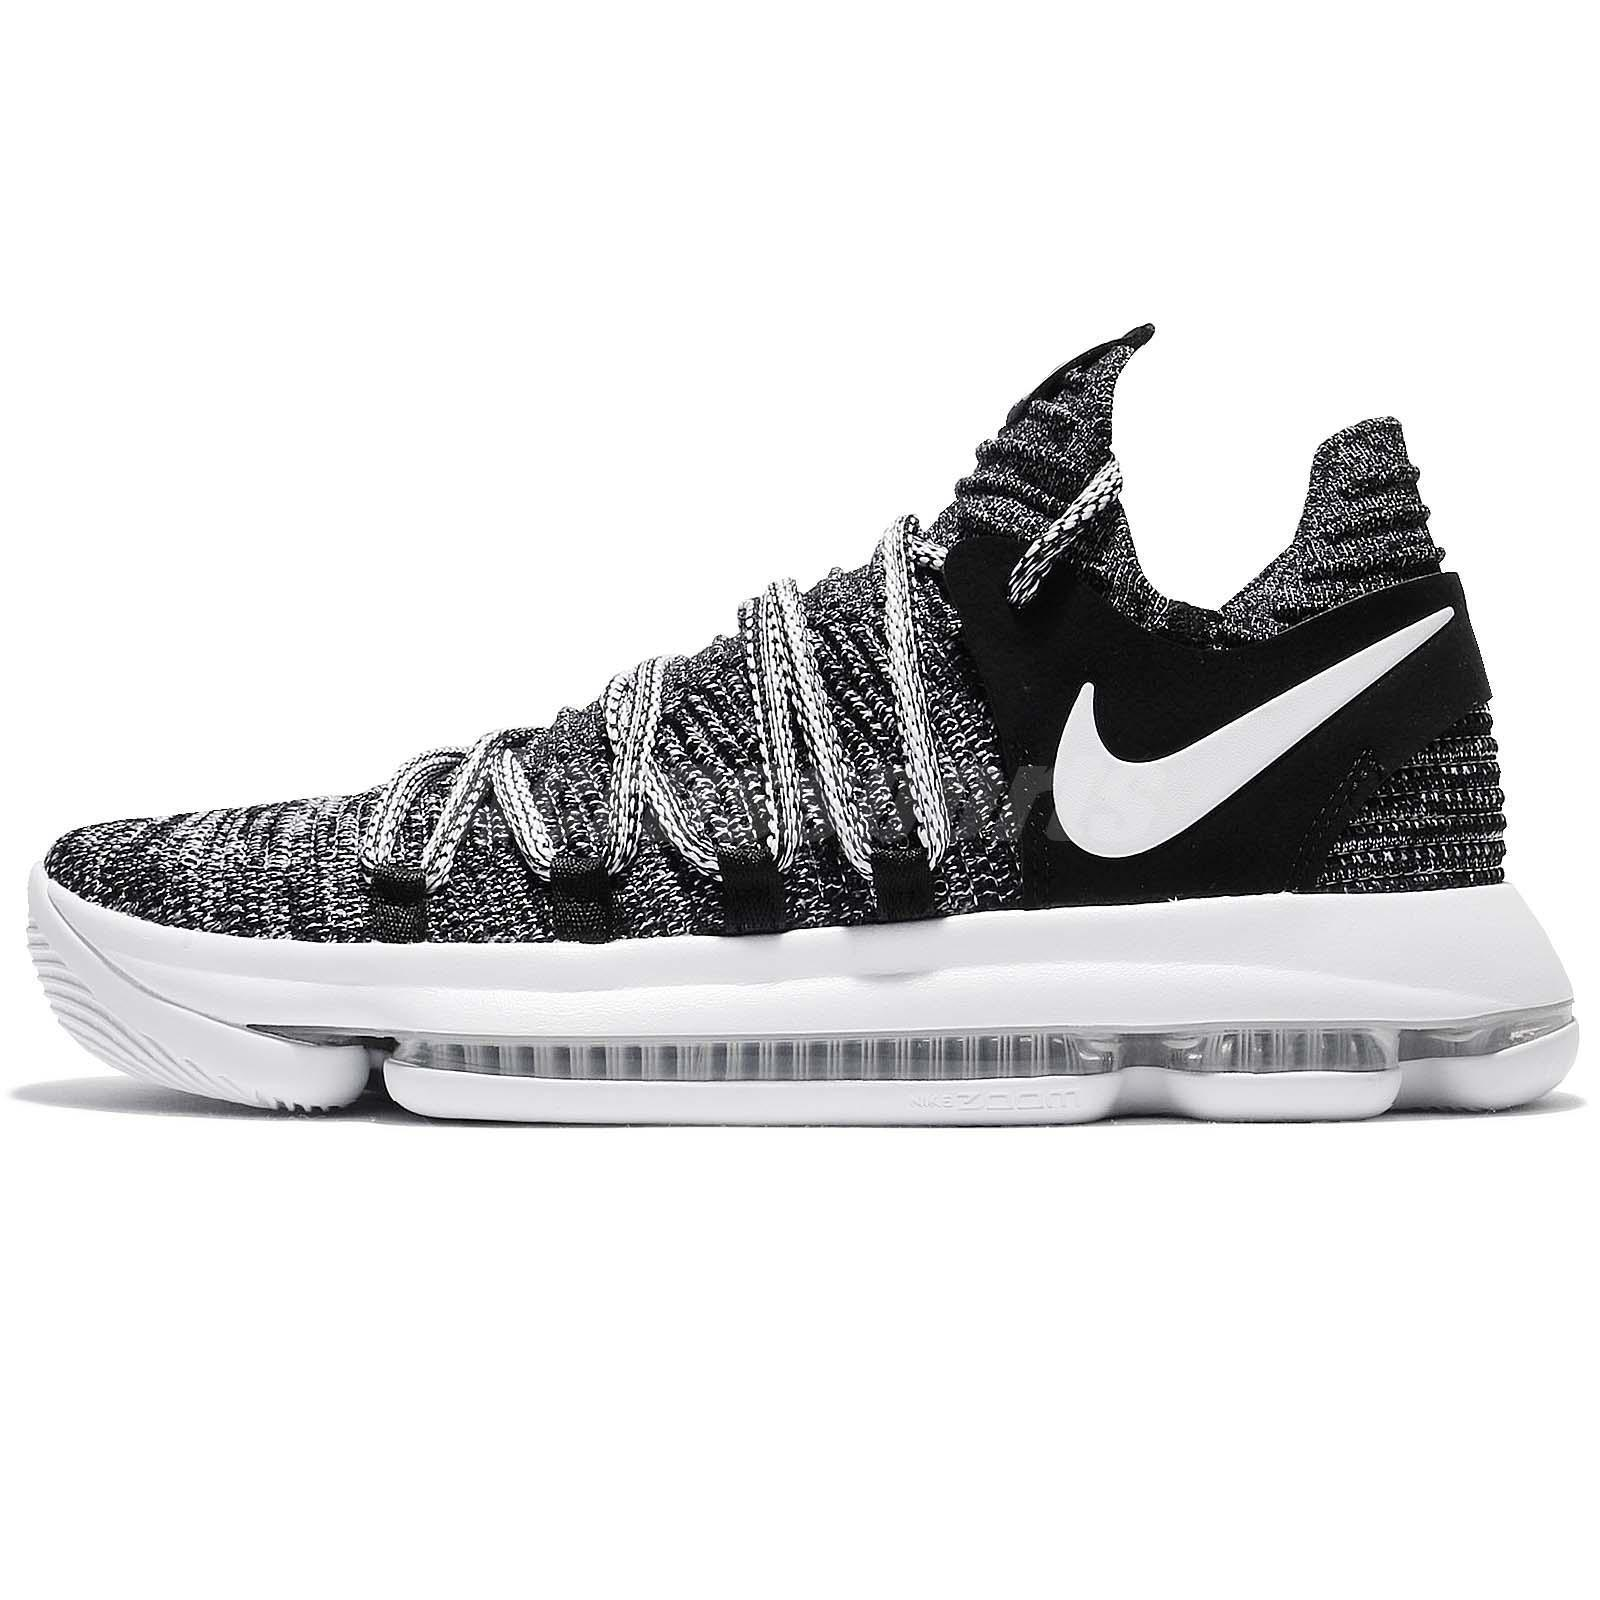 competitive price dbdd2 cd6c3 release date nike zoom kd 10 ep kdx durant fingerprint oreo black white men  xdr e262d